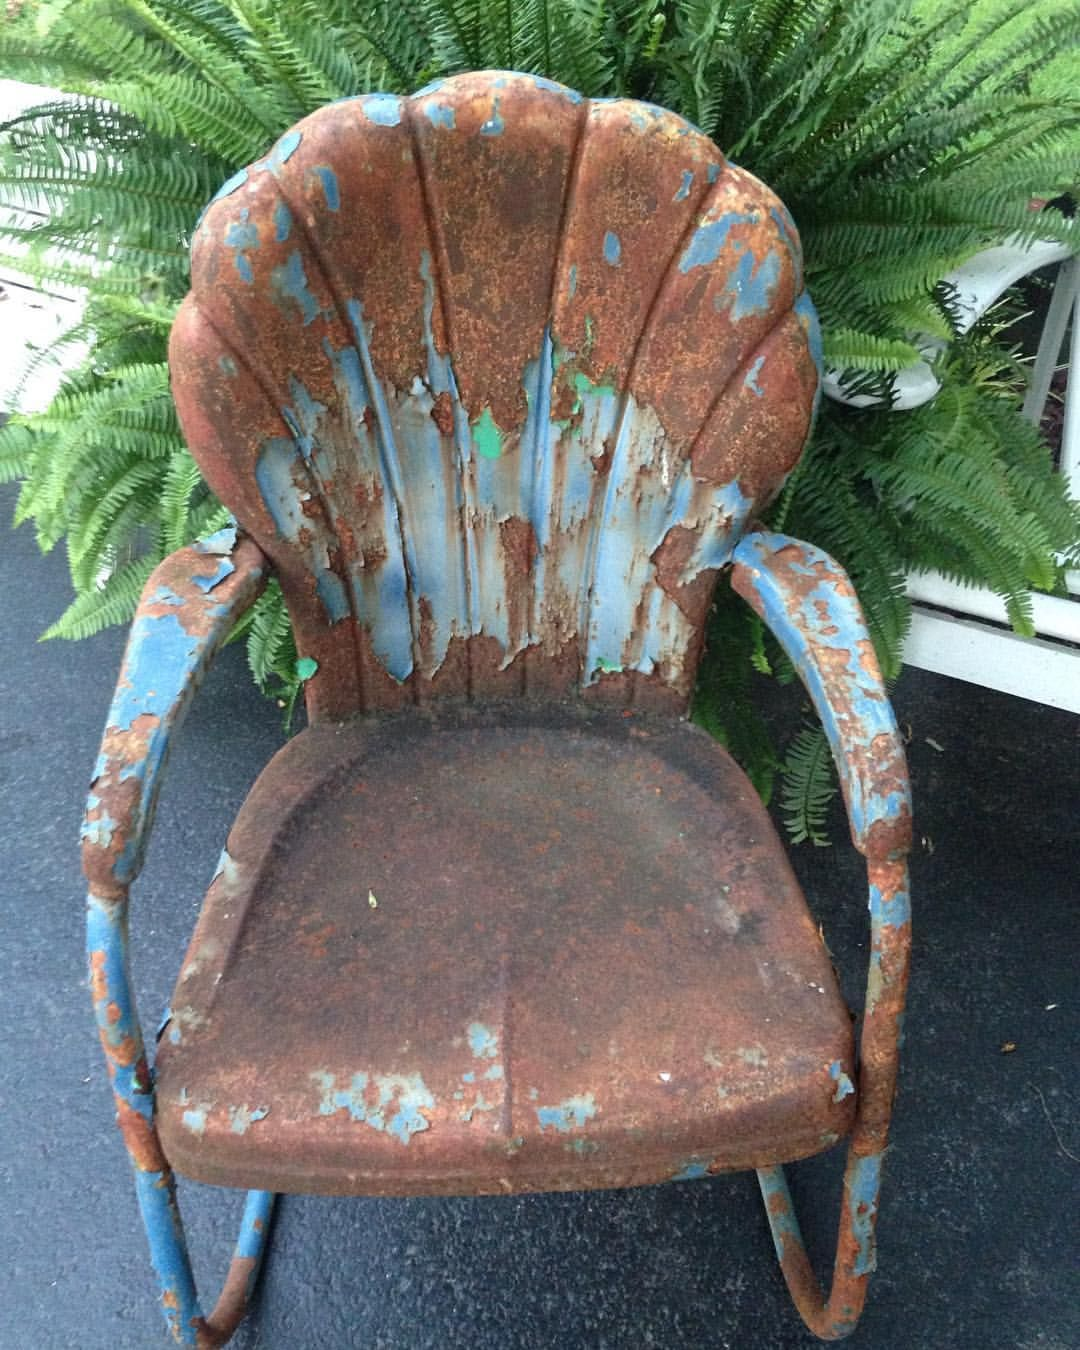 406e6f0f23a6 Reserved for K Gush Retro Metal Lawn Chair Scallop Back Rustic Vintage  Porch Furniture